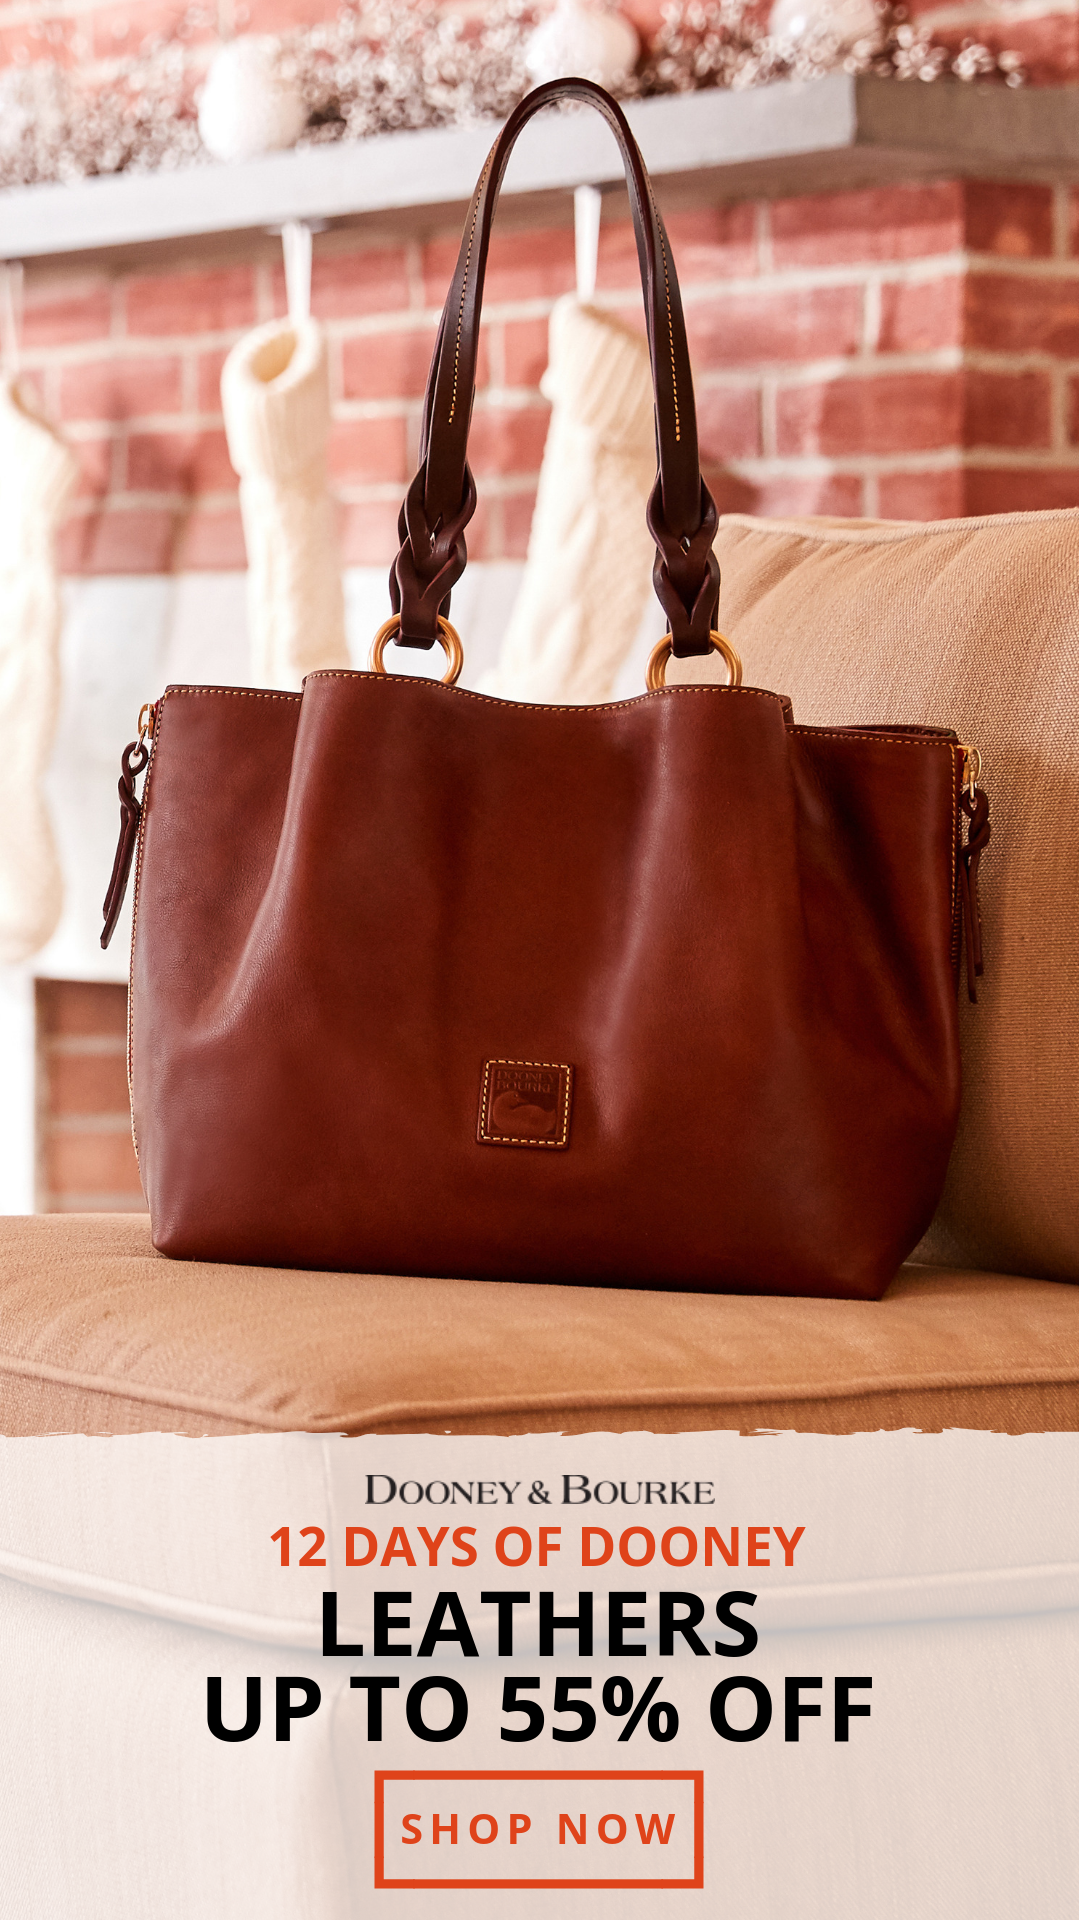 Today Select Leather Styles Are On Starting At 39 And Up To 55 Off Lasleatherpurse